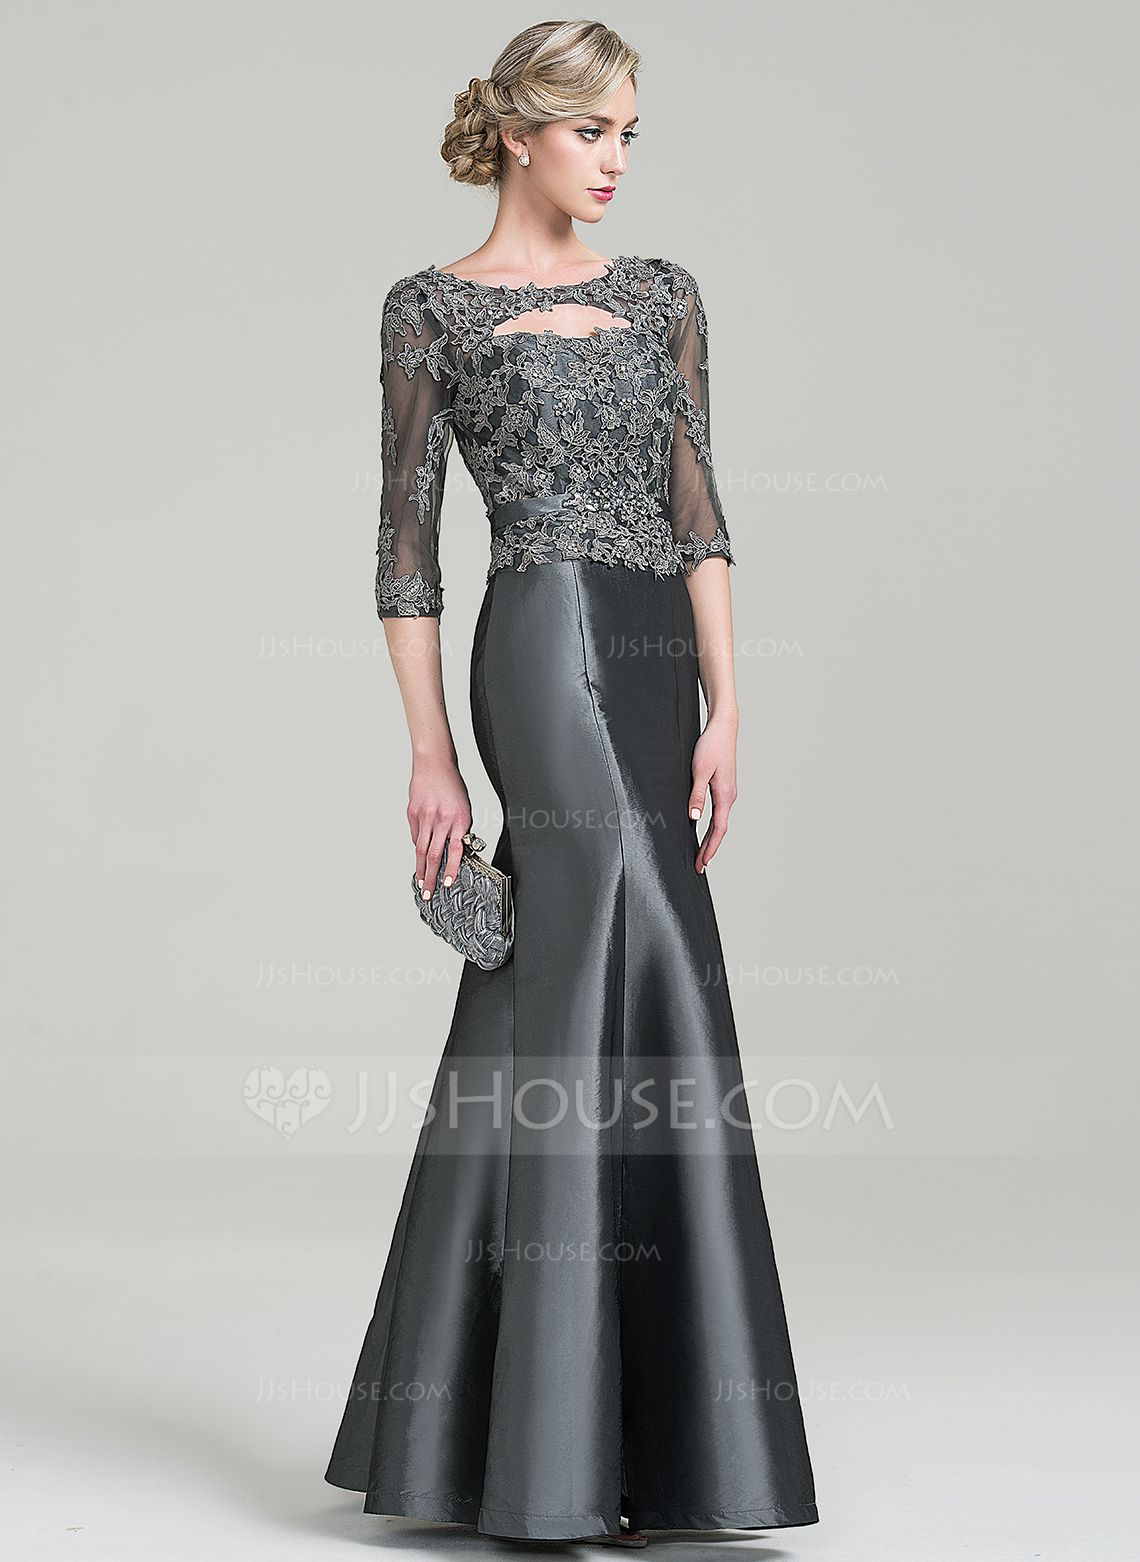 Trumpet/Mermaid Scoop Neck Floor-Length Beading Appliques Lace Sequins Zipper Up Sleeves 3/4 Sleeves No 2016 Other Colors General Plus Taffeta Mother of the Bride Dress